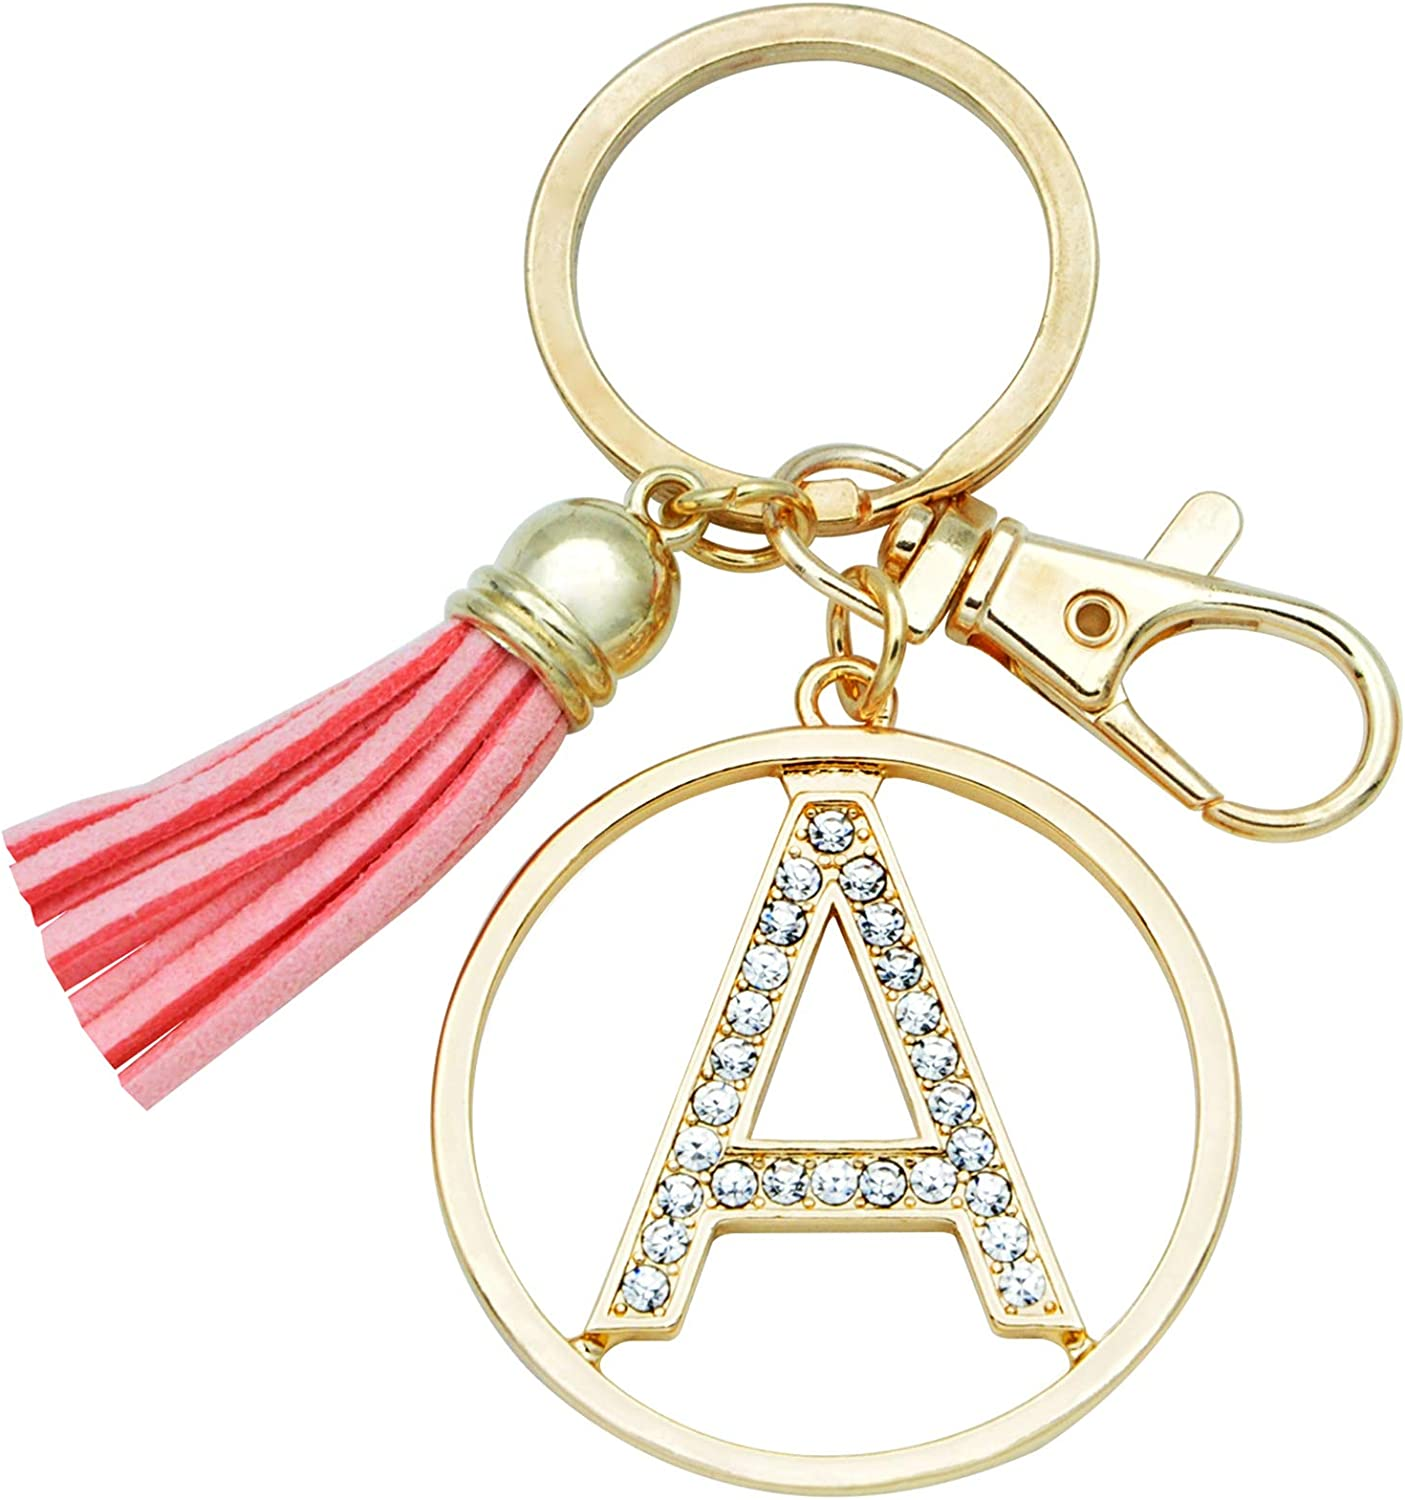 Letter Keychain for Women Purse Charms for Handbags Crystal Alphabet Initial Letter Pendant with Tassel